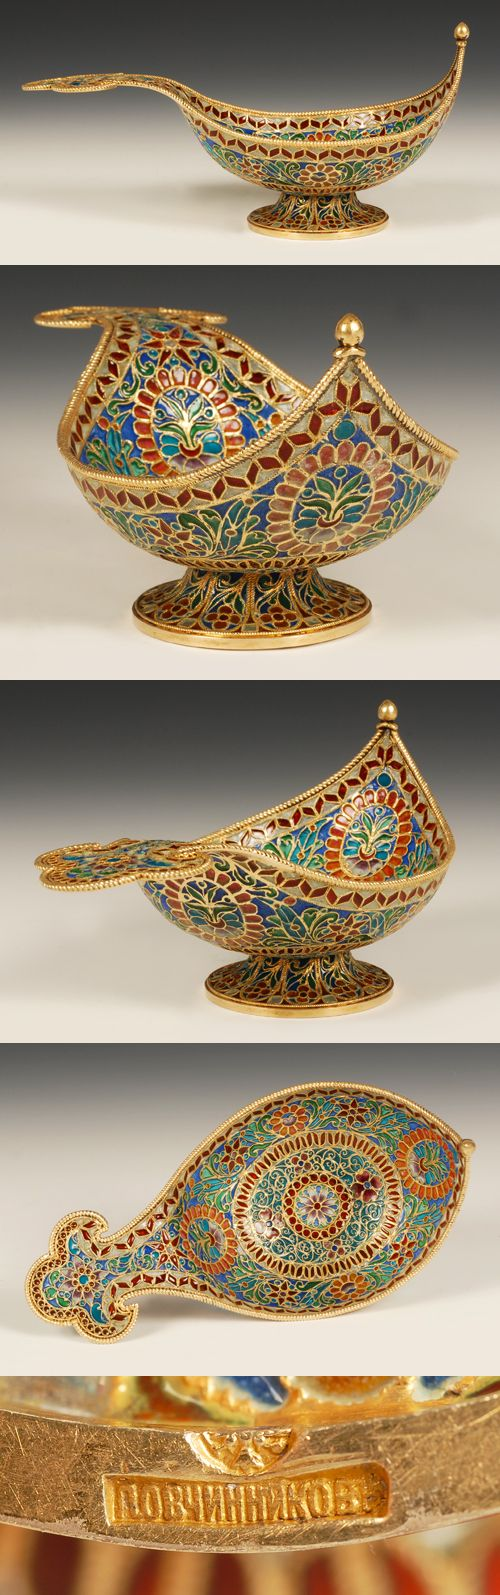 A Russian silver gilt and plique-a-jour enamel kovsh, Pavel Ovchinnikov, Moscow, circa 1896-1908. The shallow boat shep kovsh on a raised circular base completely decoratedd in vibfrant dtylized floral snd geometric patterns of pliwue-a-jour enamel.